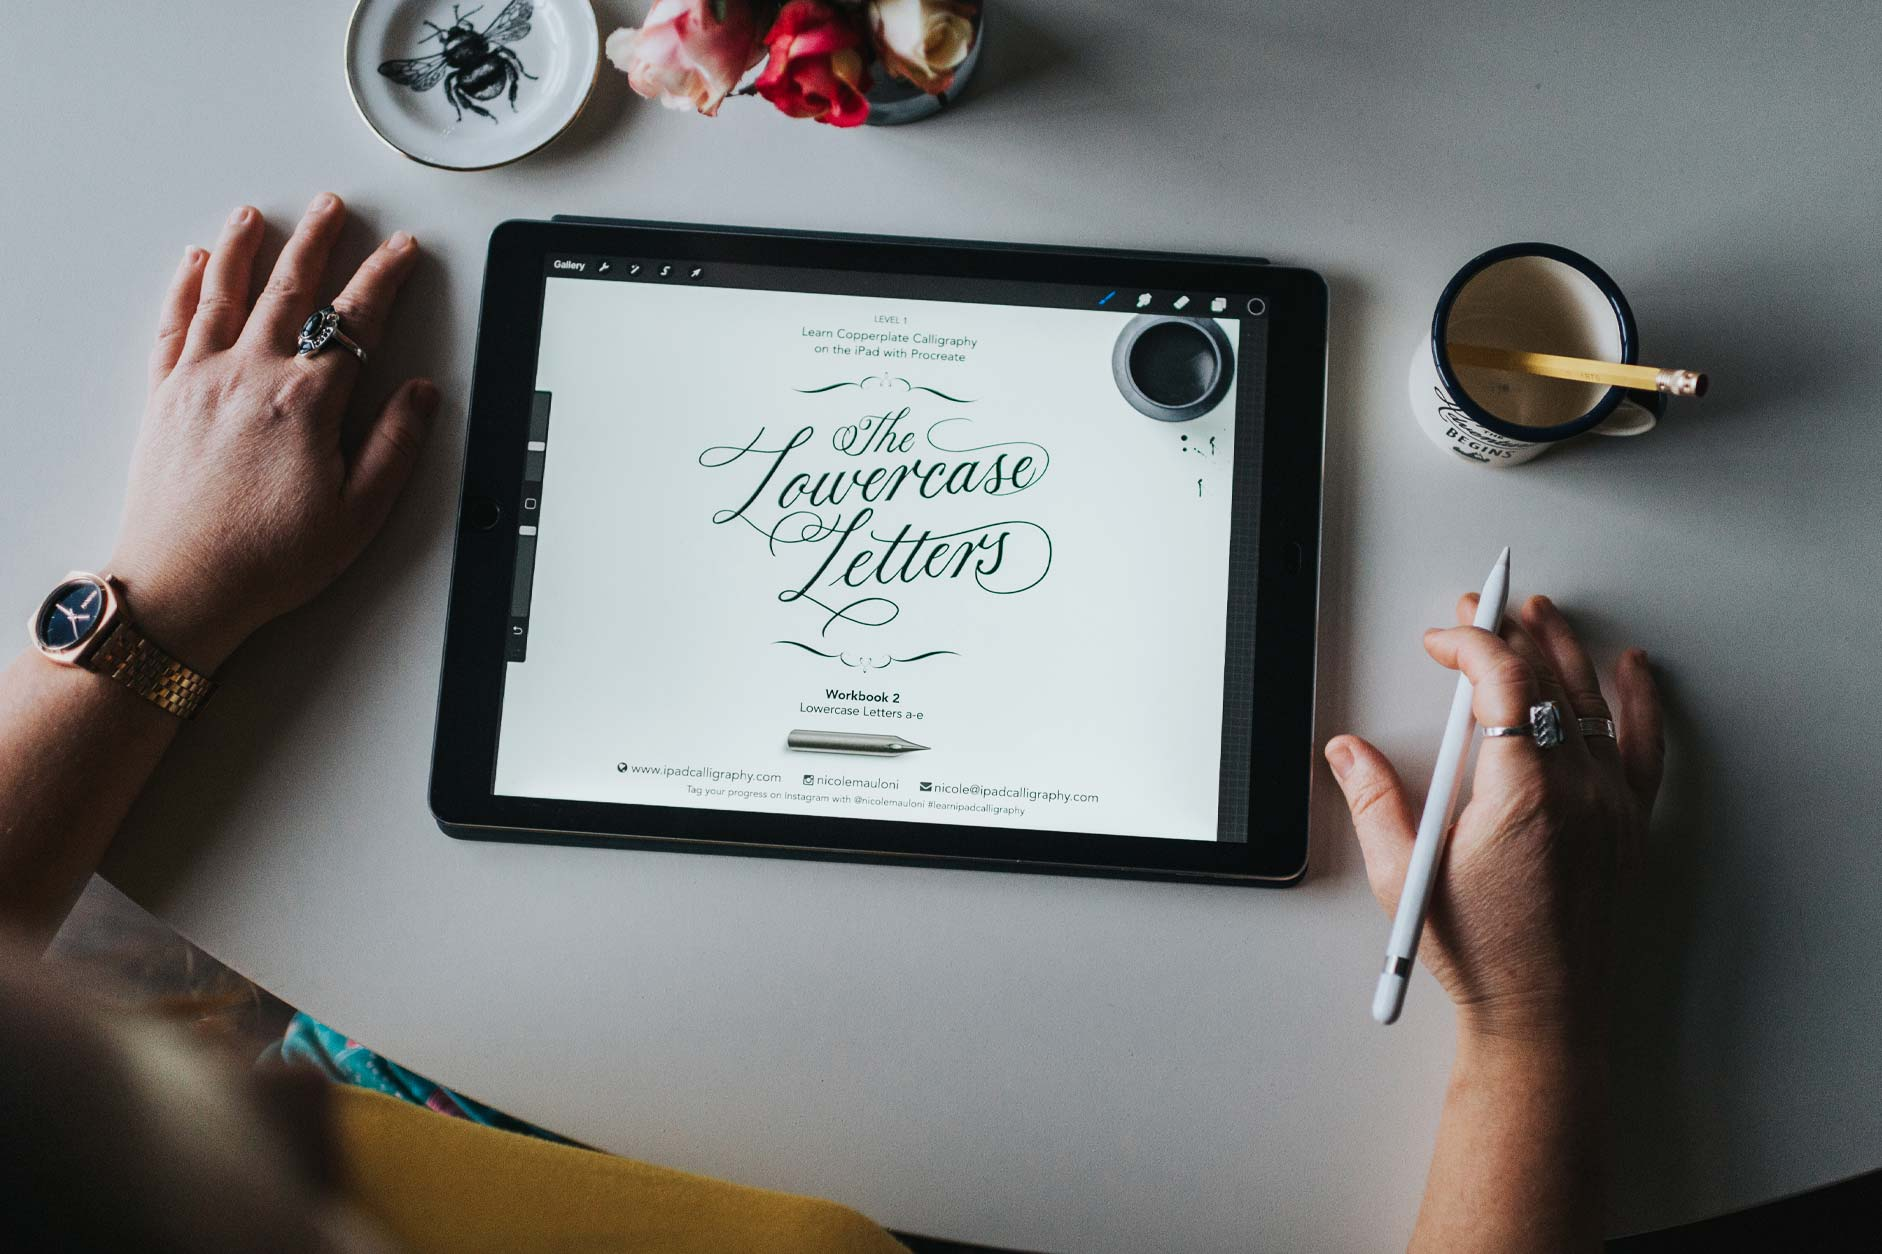 Learn Copperplate Calligraphy on the iPad course